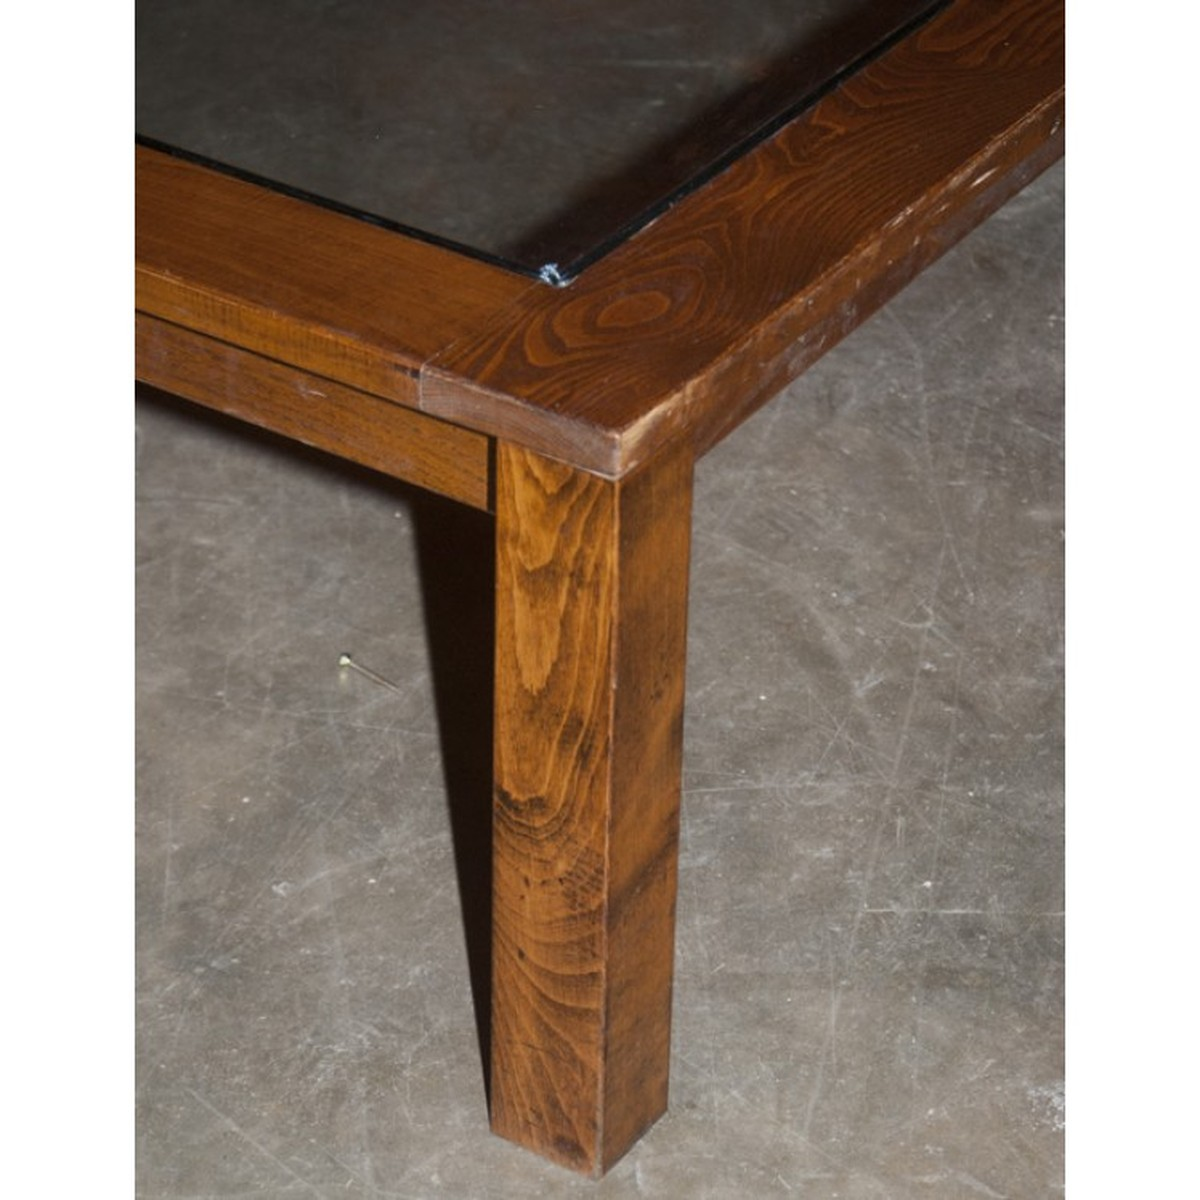 Glass Top Coffee Tables For Sale Secondhand Pub Equipment Sofas And Low Tables Large